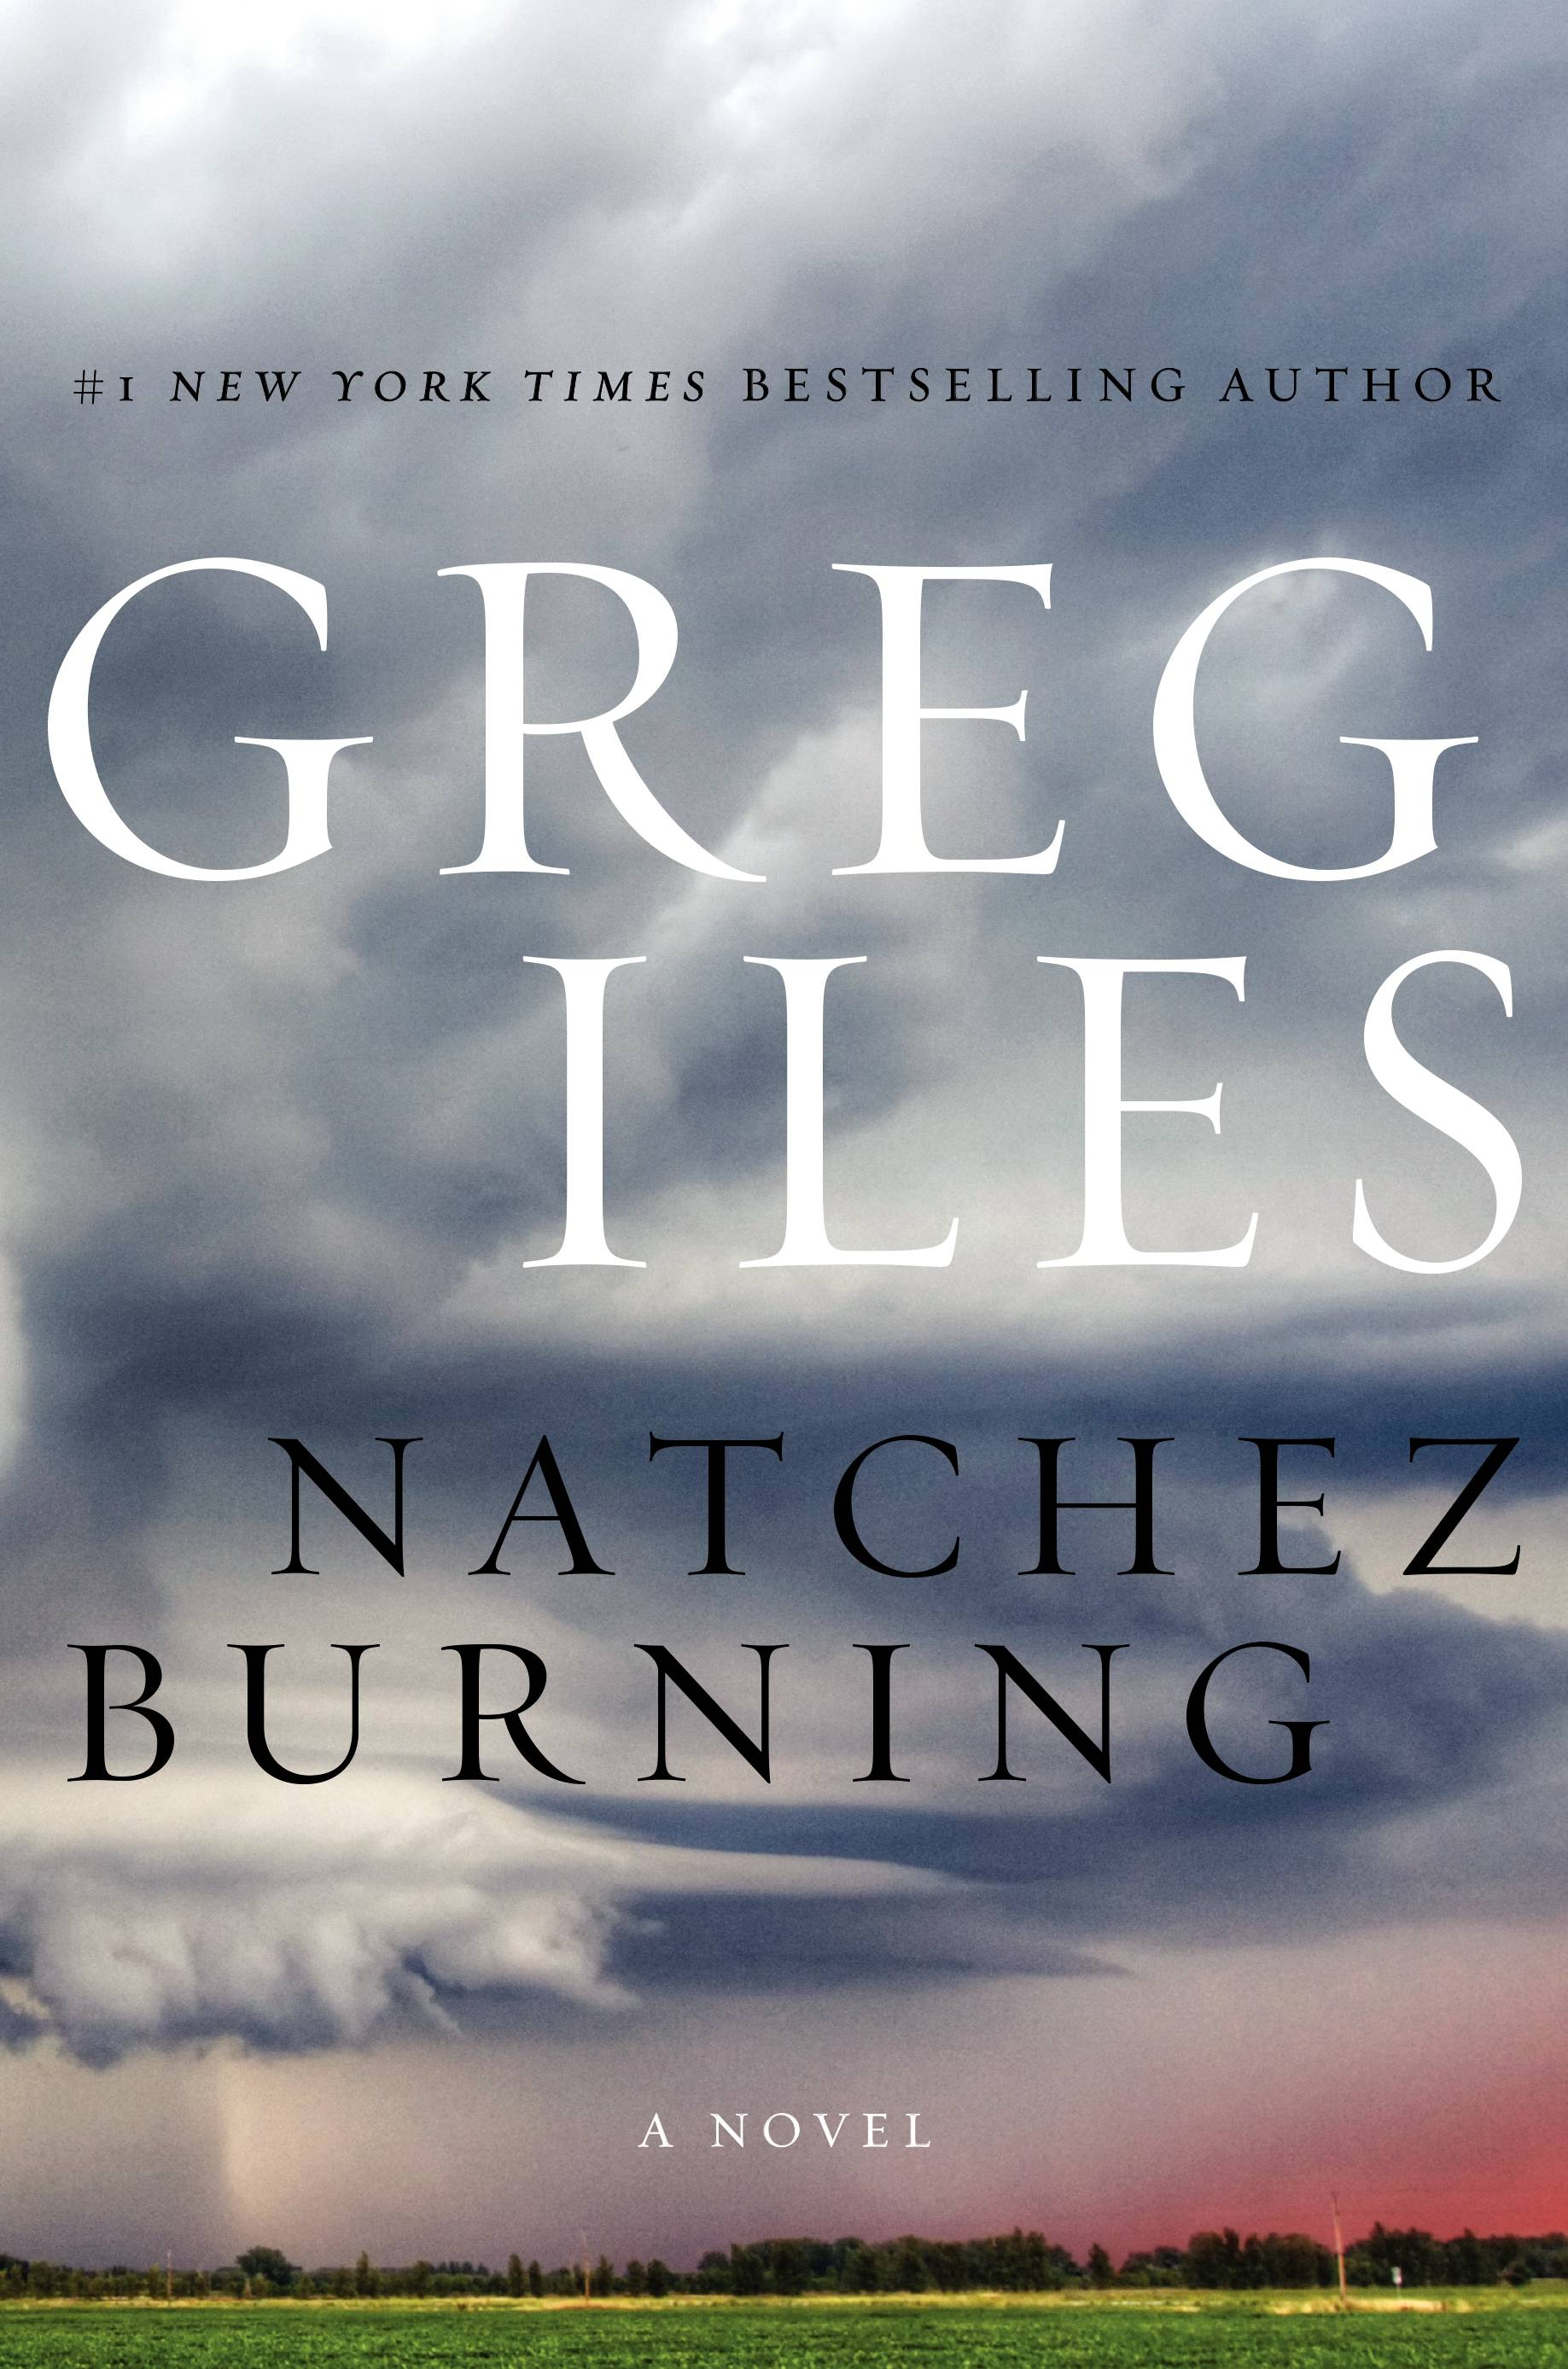 """Natchez Burning"" by Greg Iles tops off at 800 pages."